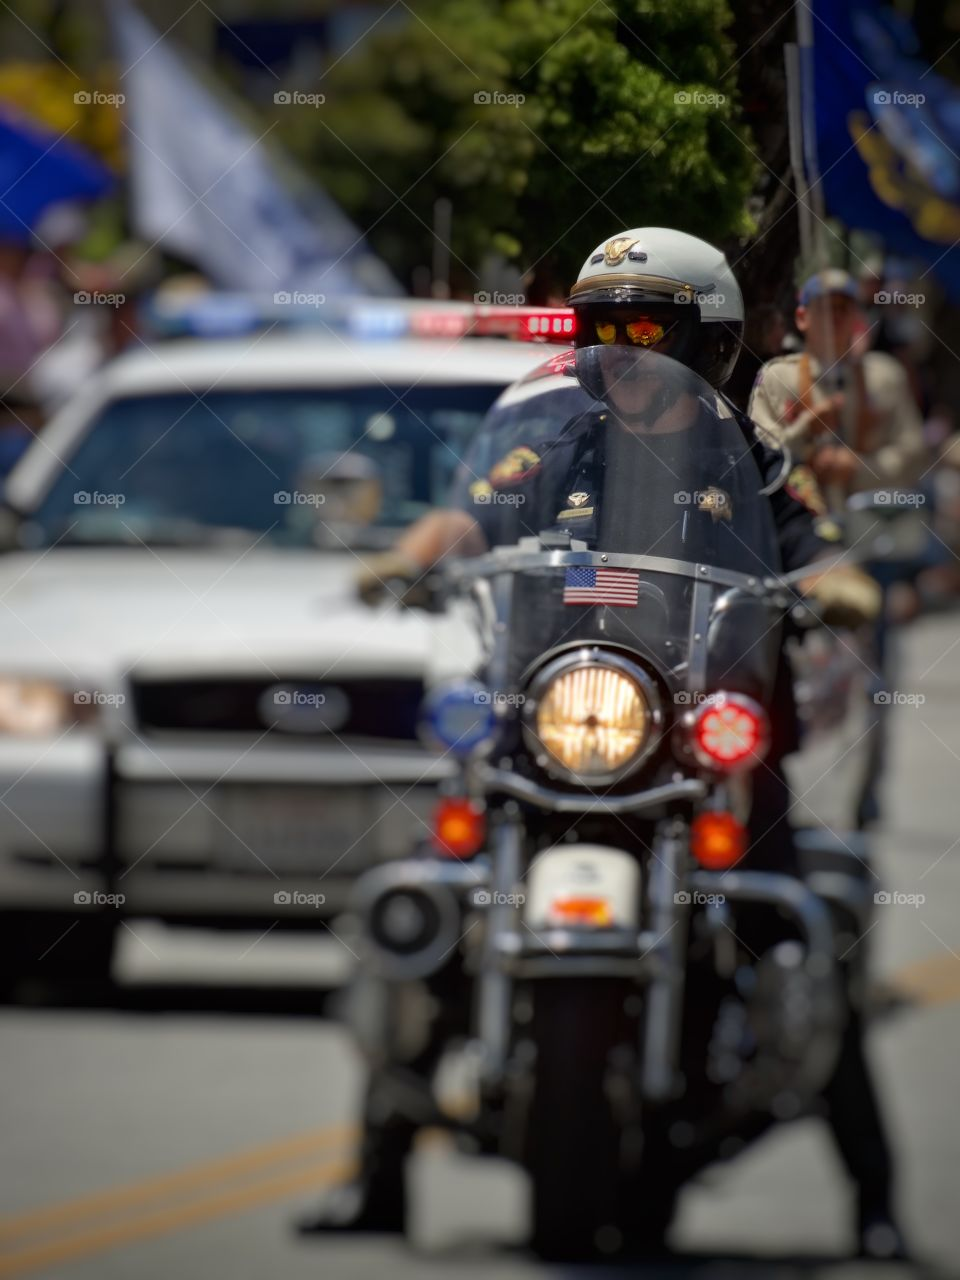 Motorcycle Police. American Police Officer On A Motorcycle